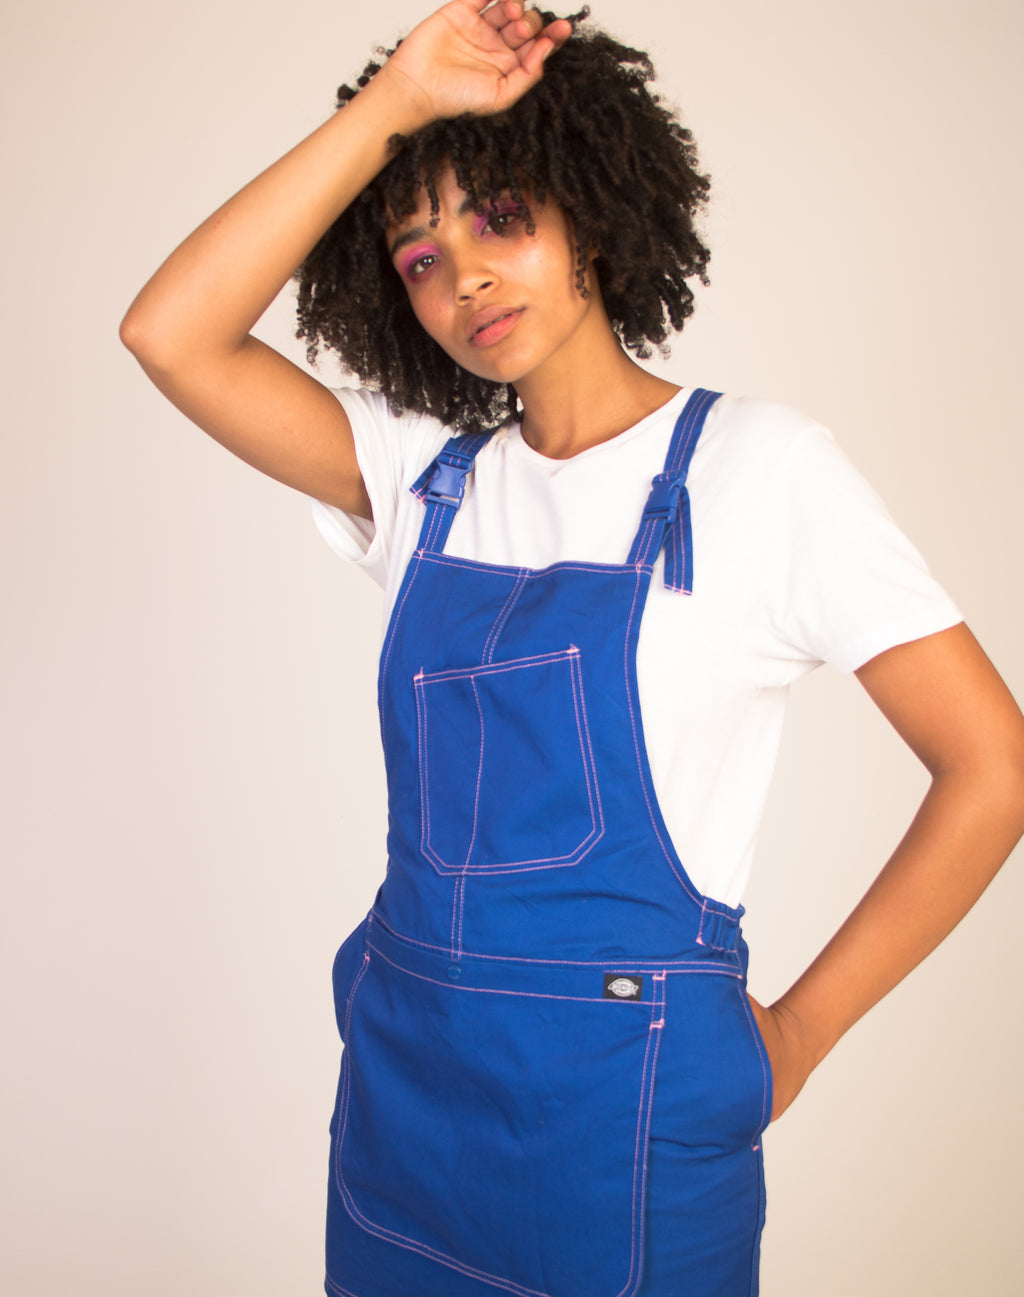 DICKIES BLUE CONTRAST STITCH PINAFORE